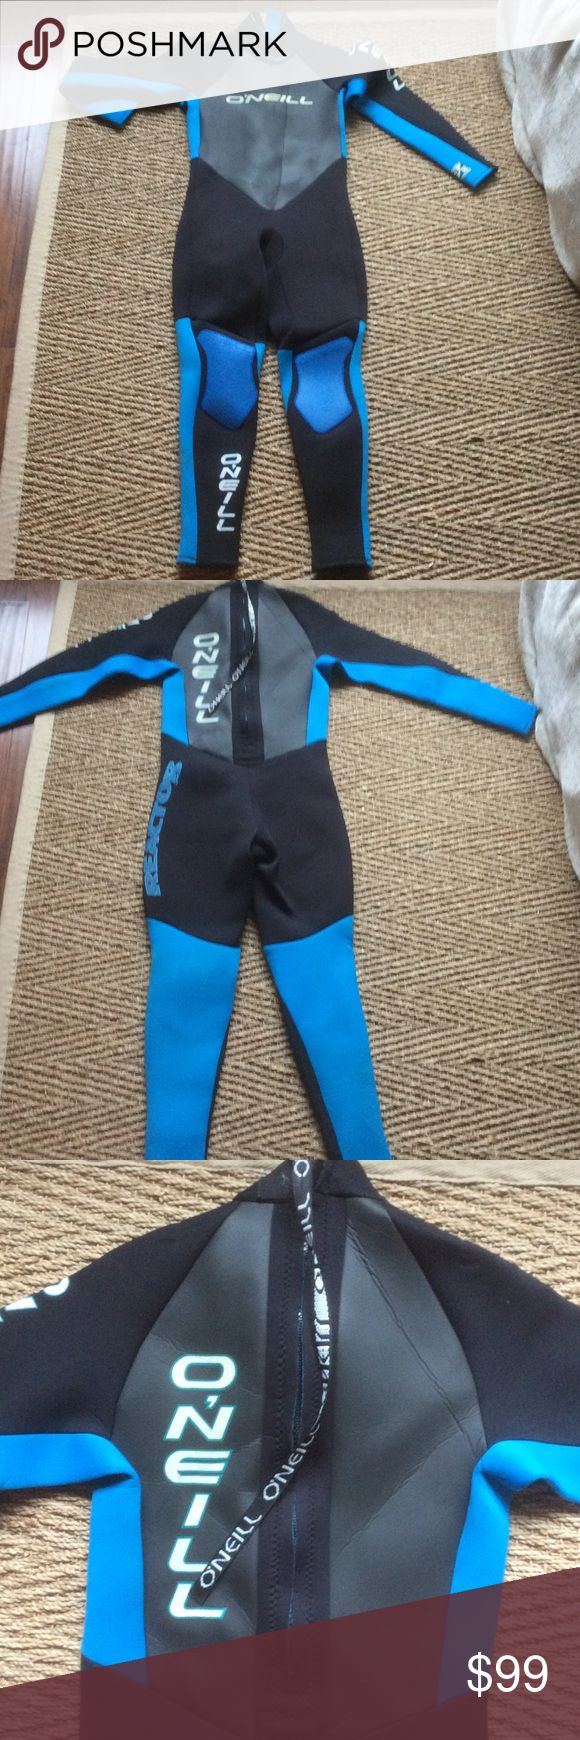 Awesome ONEILL REACTOR WETSUIT zip back neoprene Awesome ONEILL REACTOR WETSUIT zip back neoprene EUC For surfing, diving, ski, or any sport in water. 3/2 density O'Neill Swim